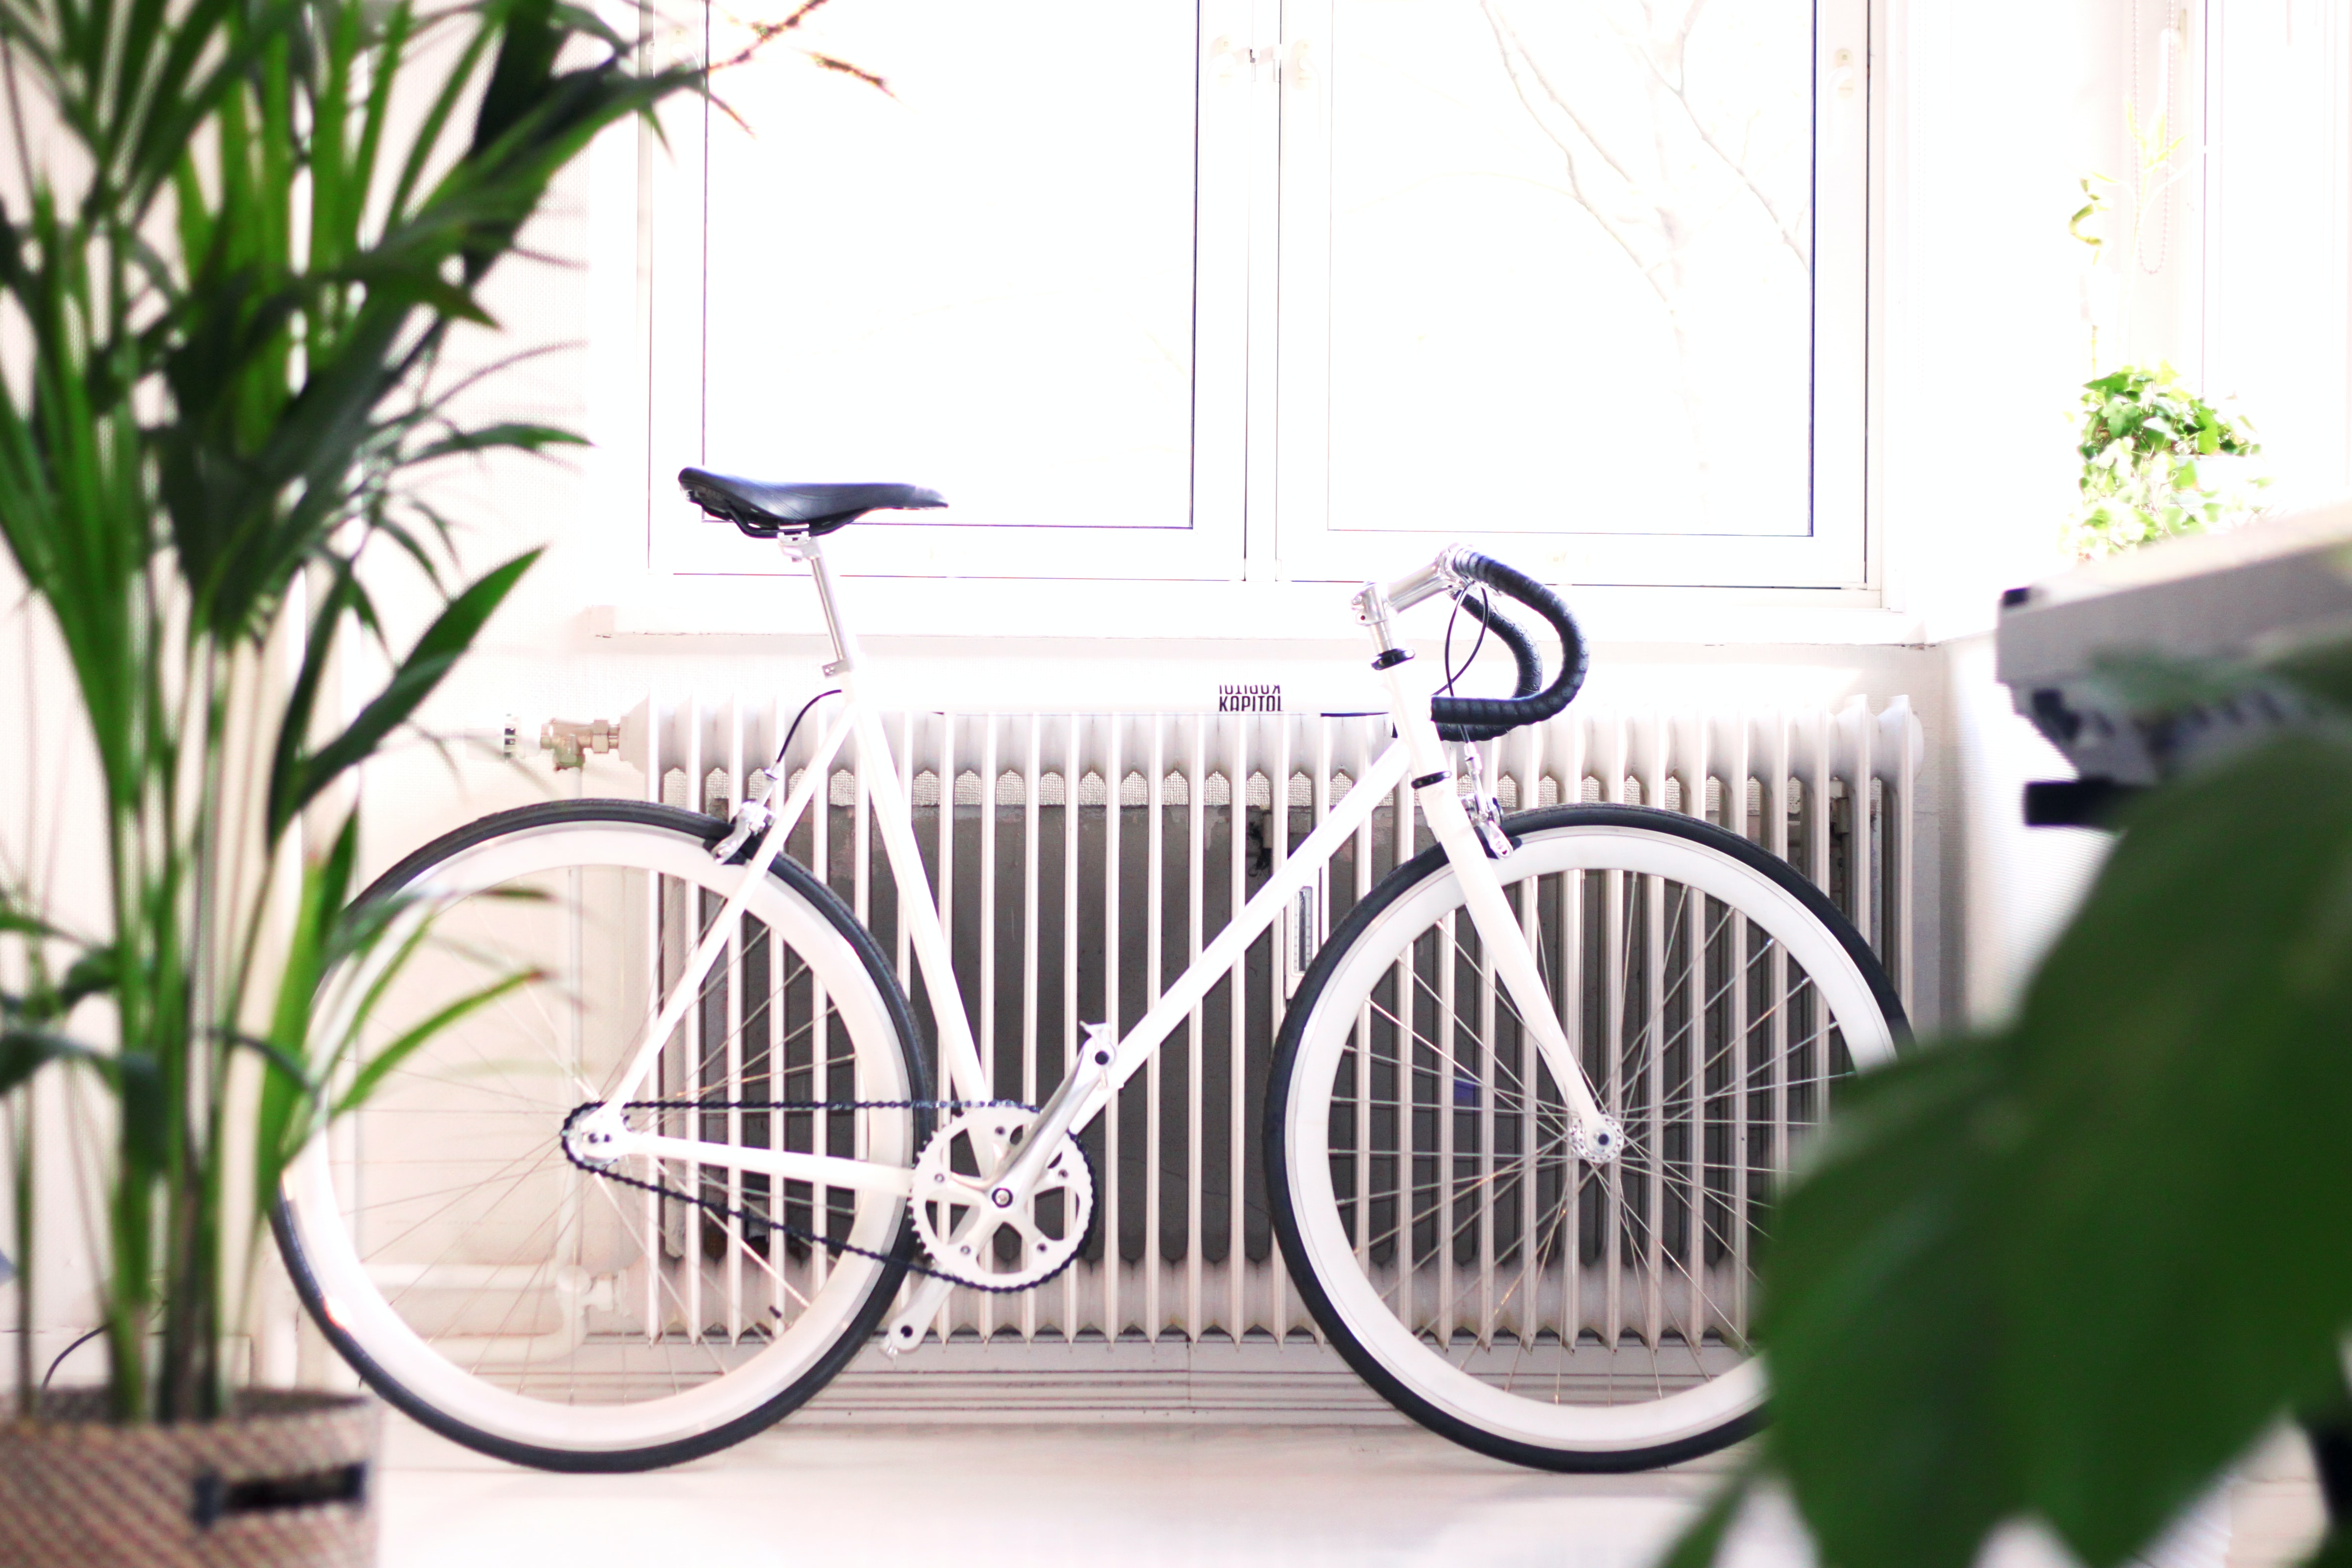 white fixie bike